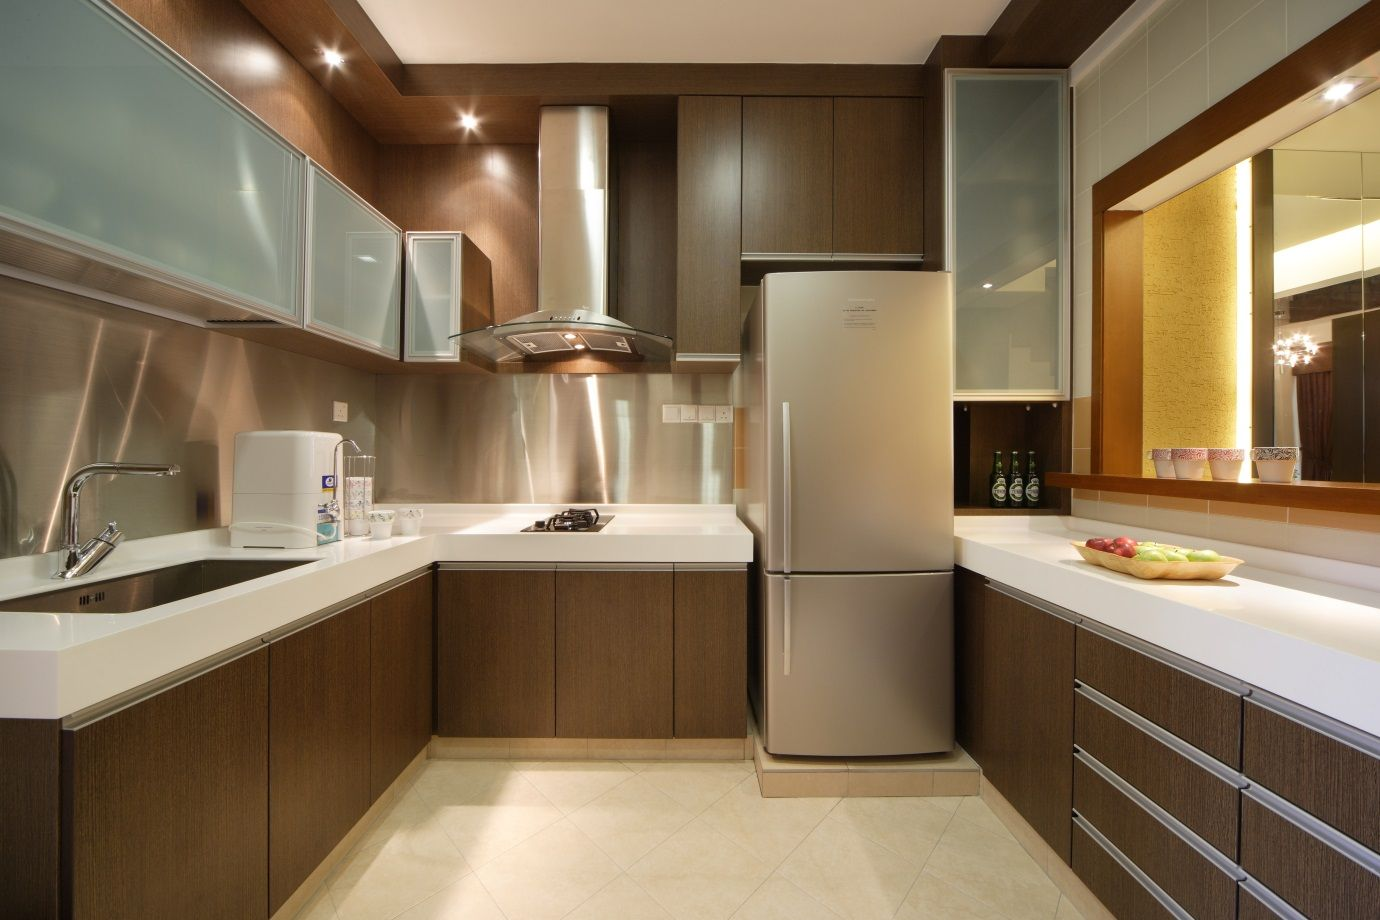 Malaysia Modern Kitchen Cabinet Design Google Search Architectural